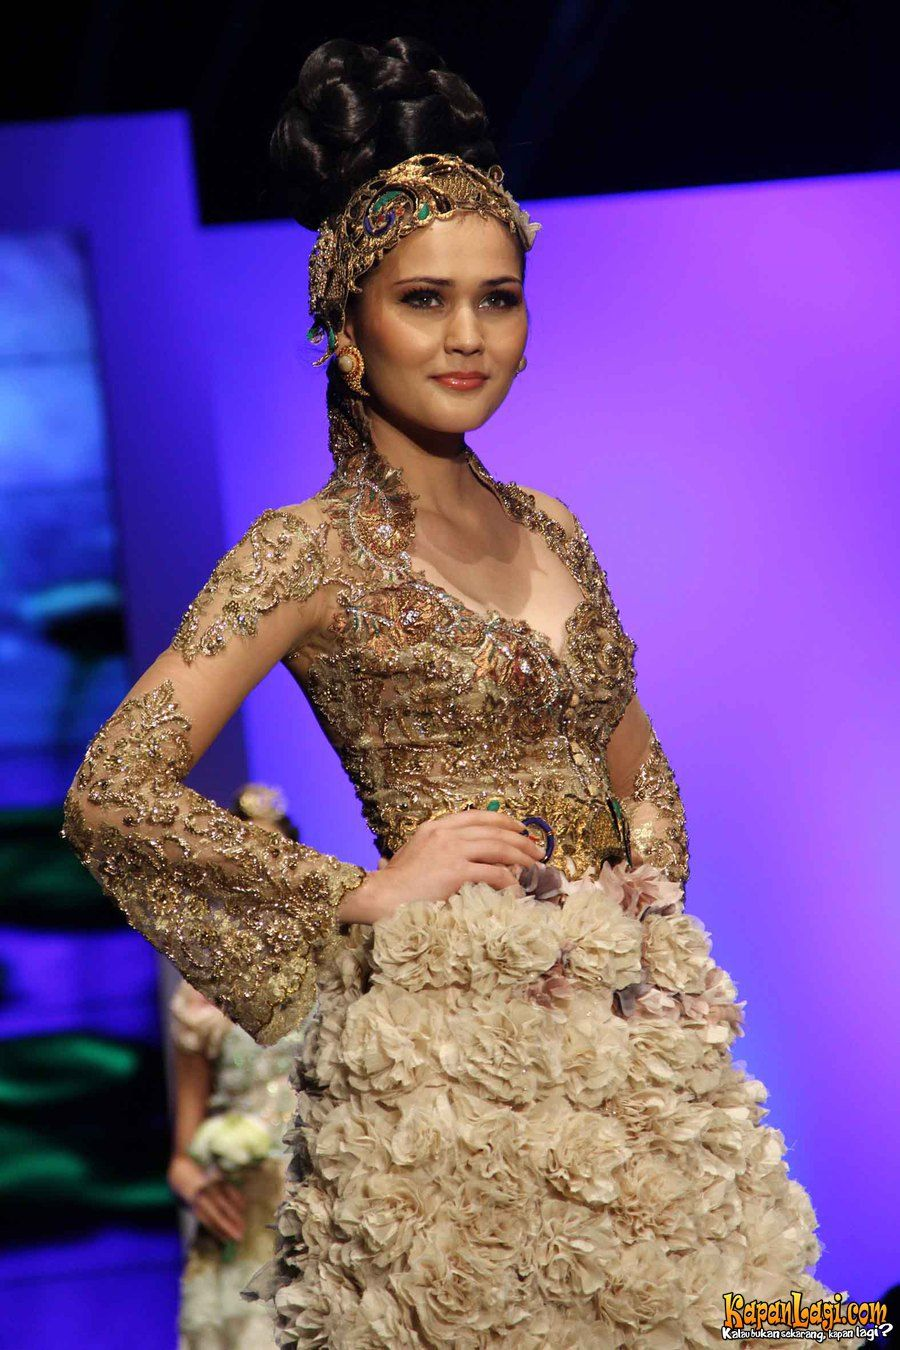 Pictures of Foto Koleksi Anne Avantie Indonesia Sehati Ifw